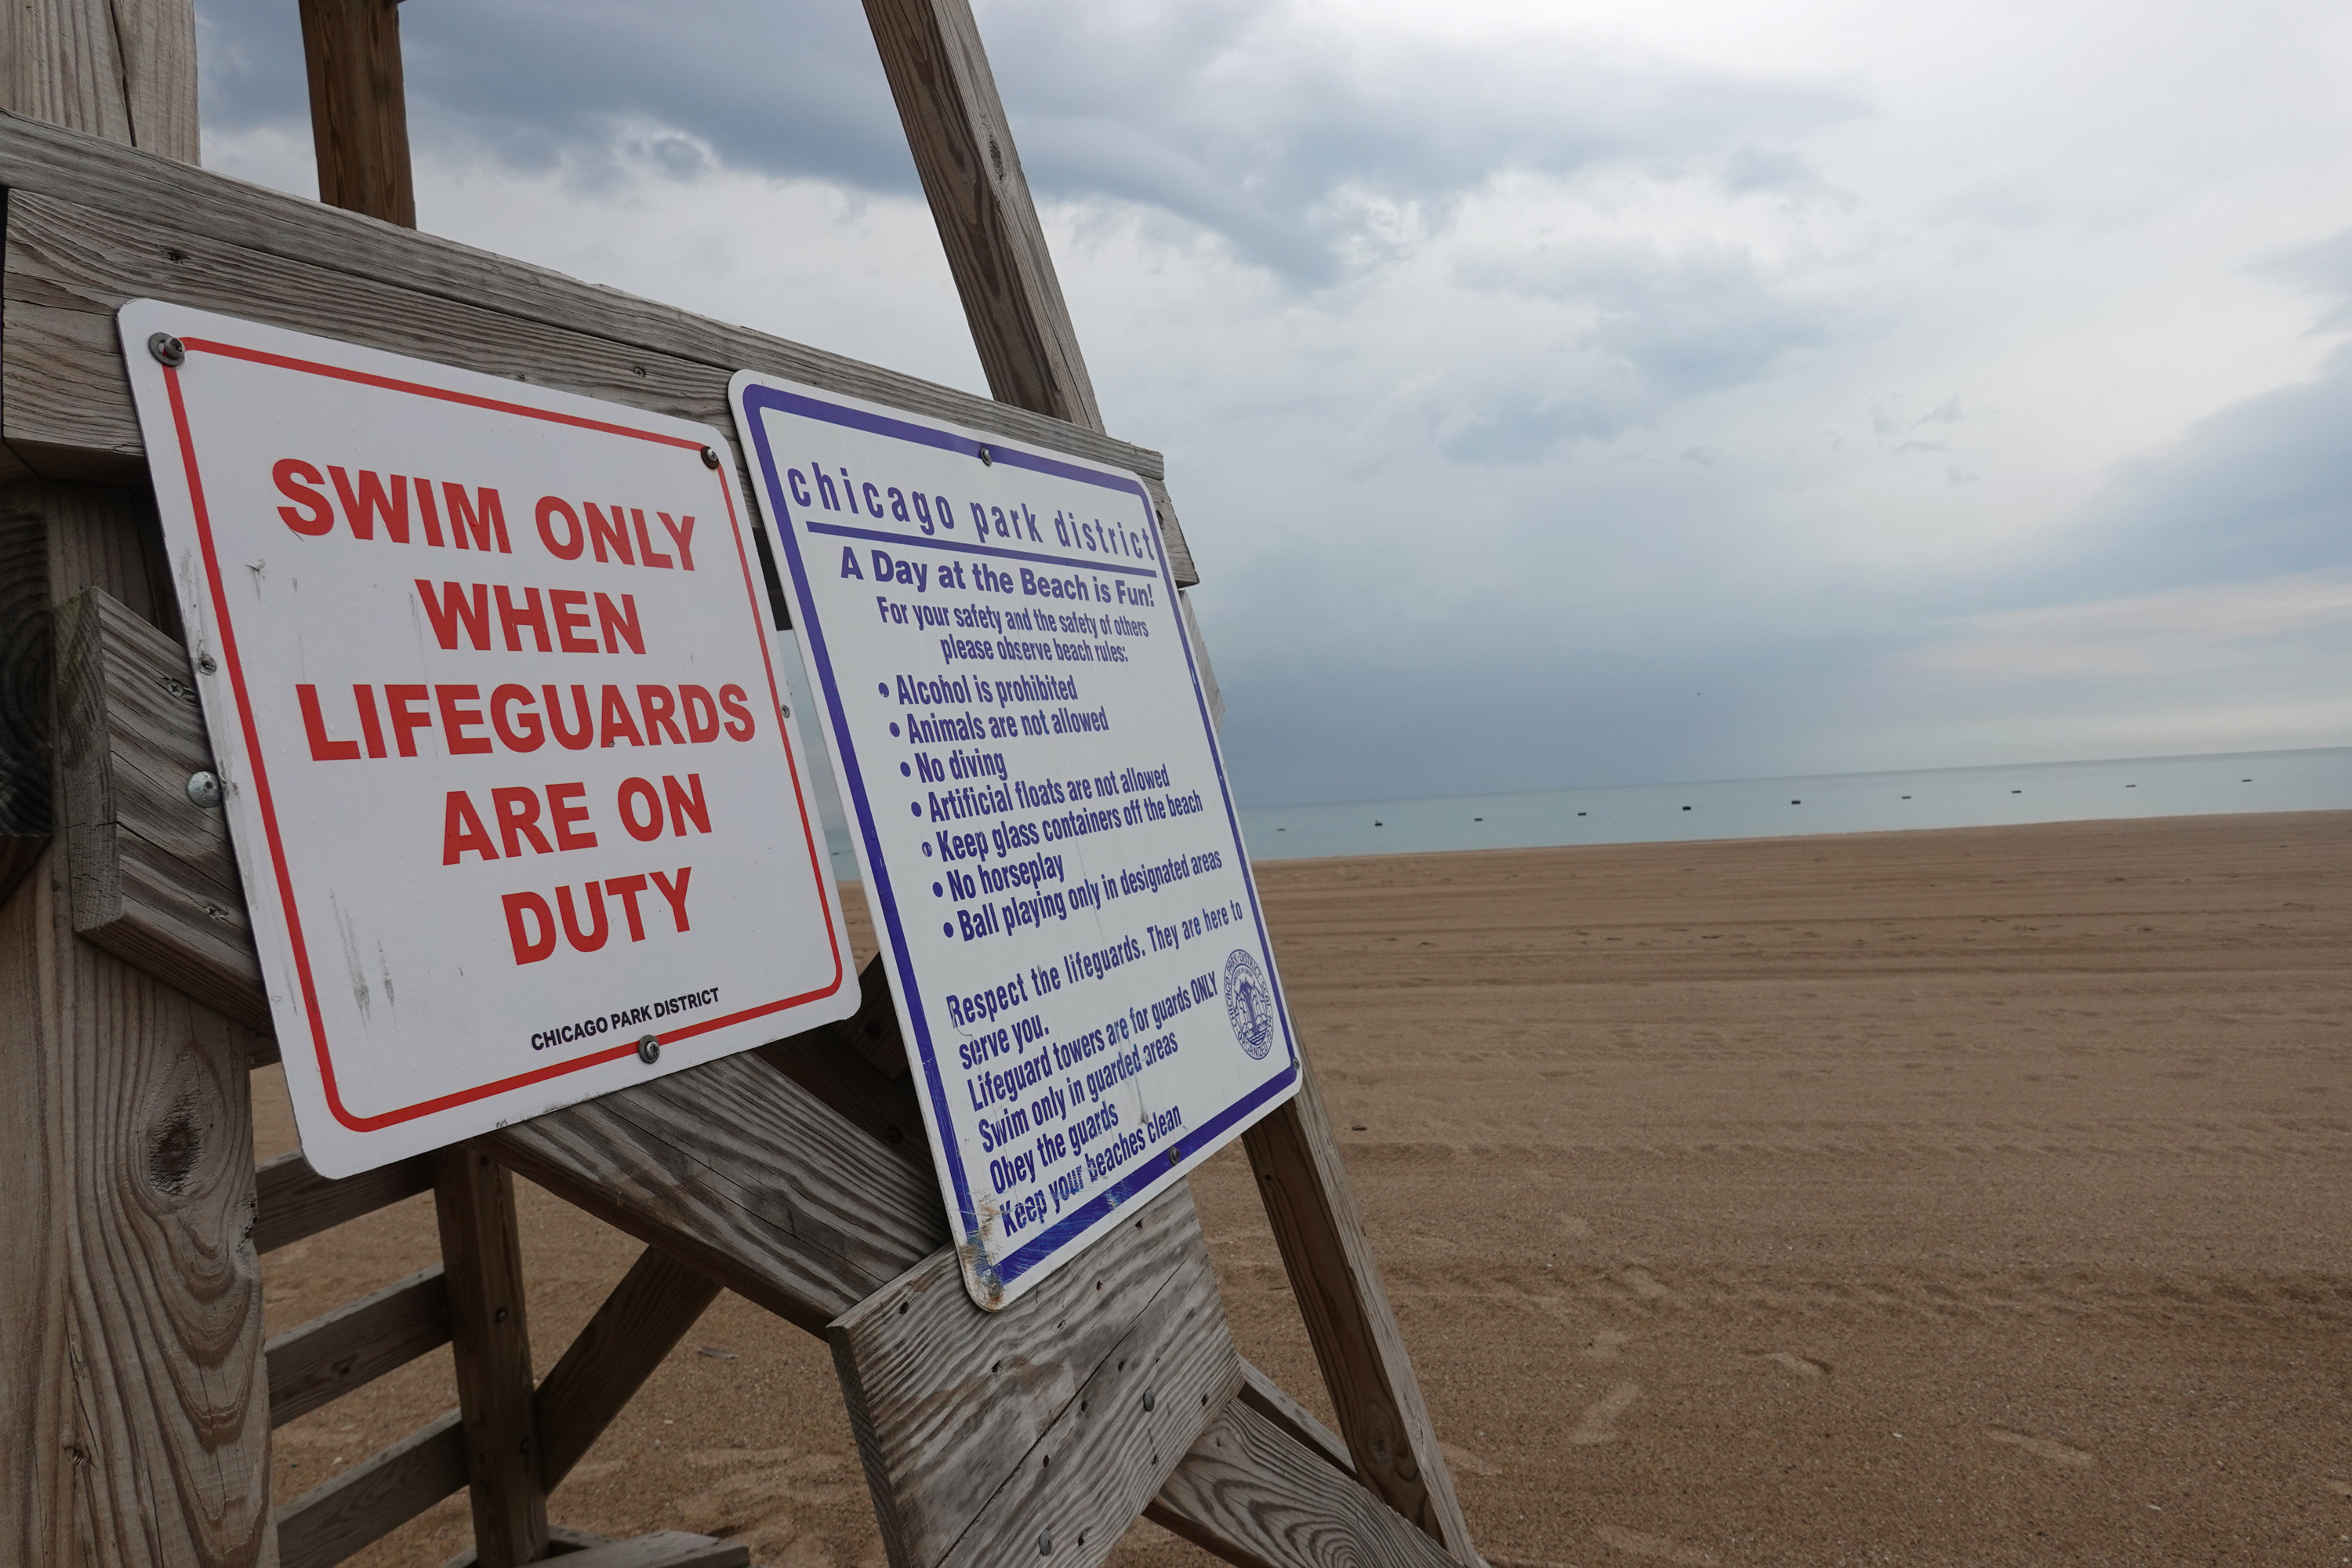 The lifeguard stand at North Avenue Beach along the Lake Michigan shore in Chicago on June 22, 2020.